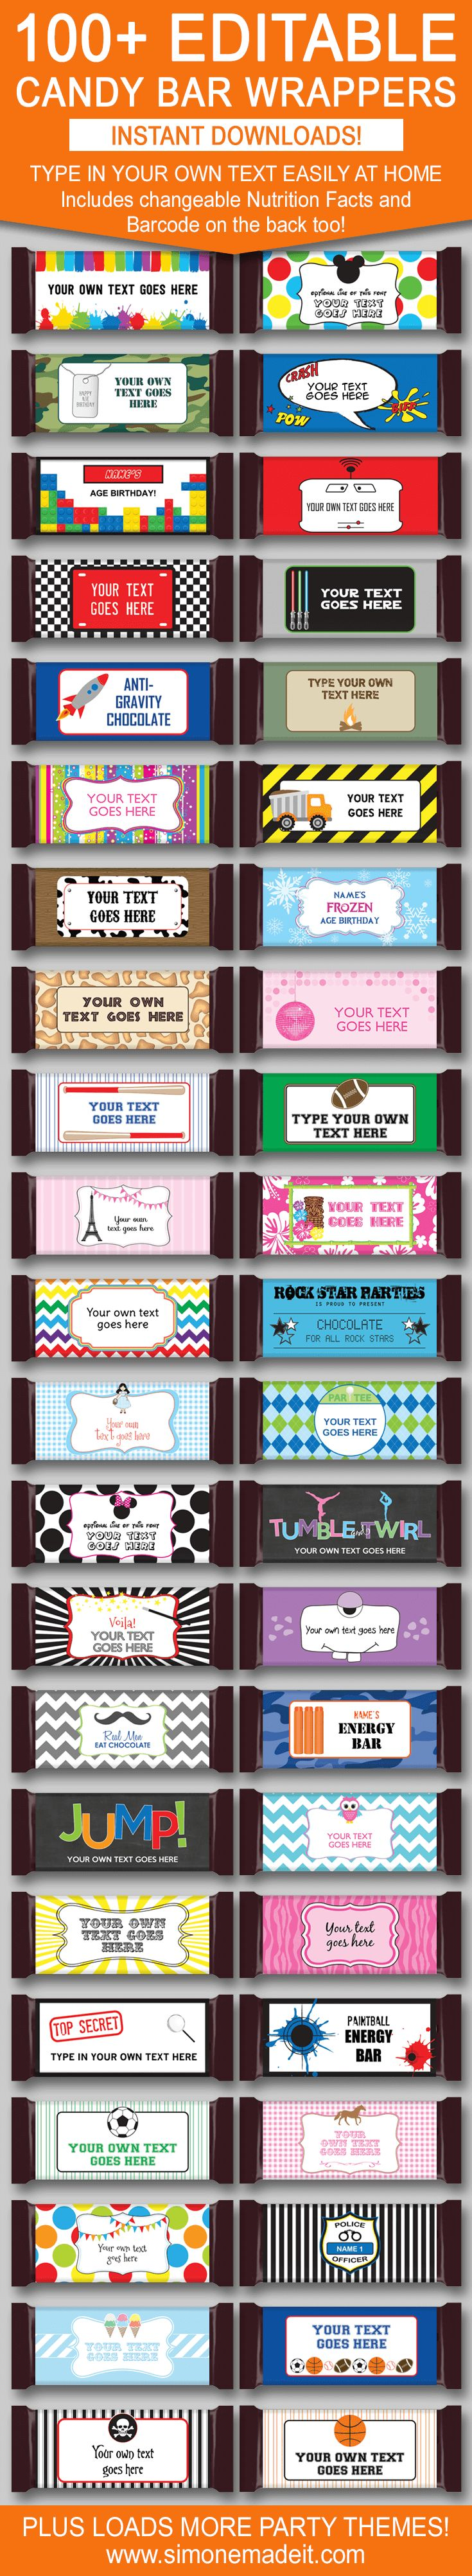 Diy Candy Bar Wrapper Templates Candy Wrappers Amp Treat